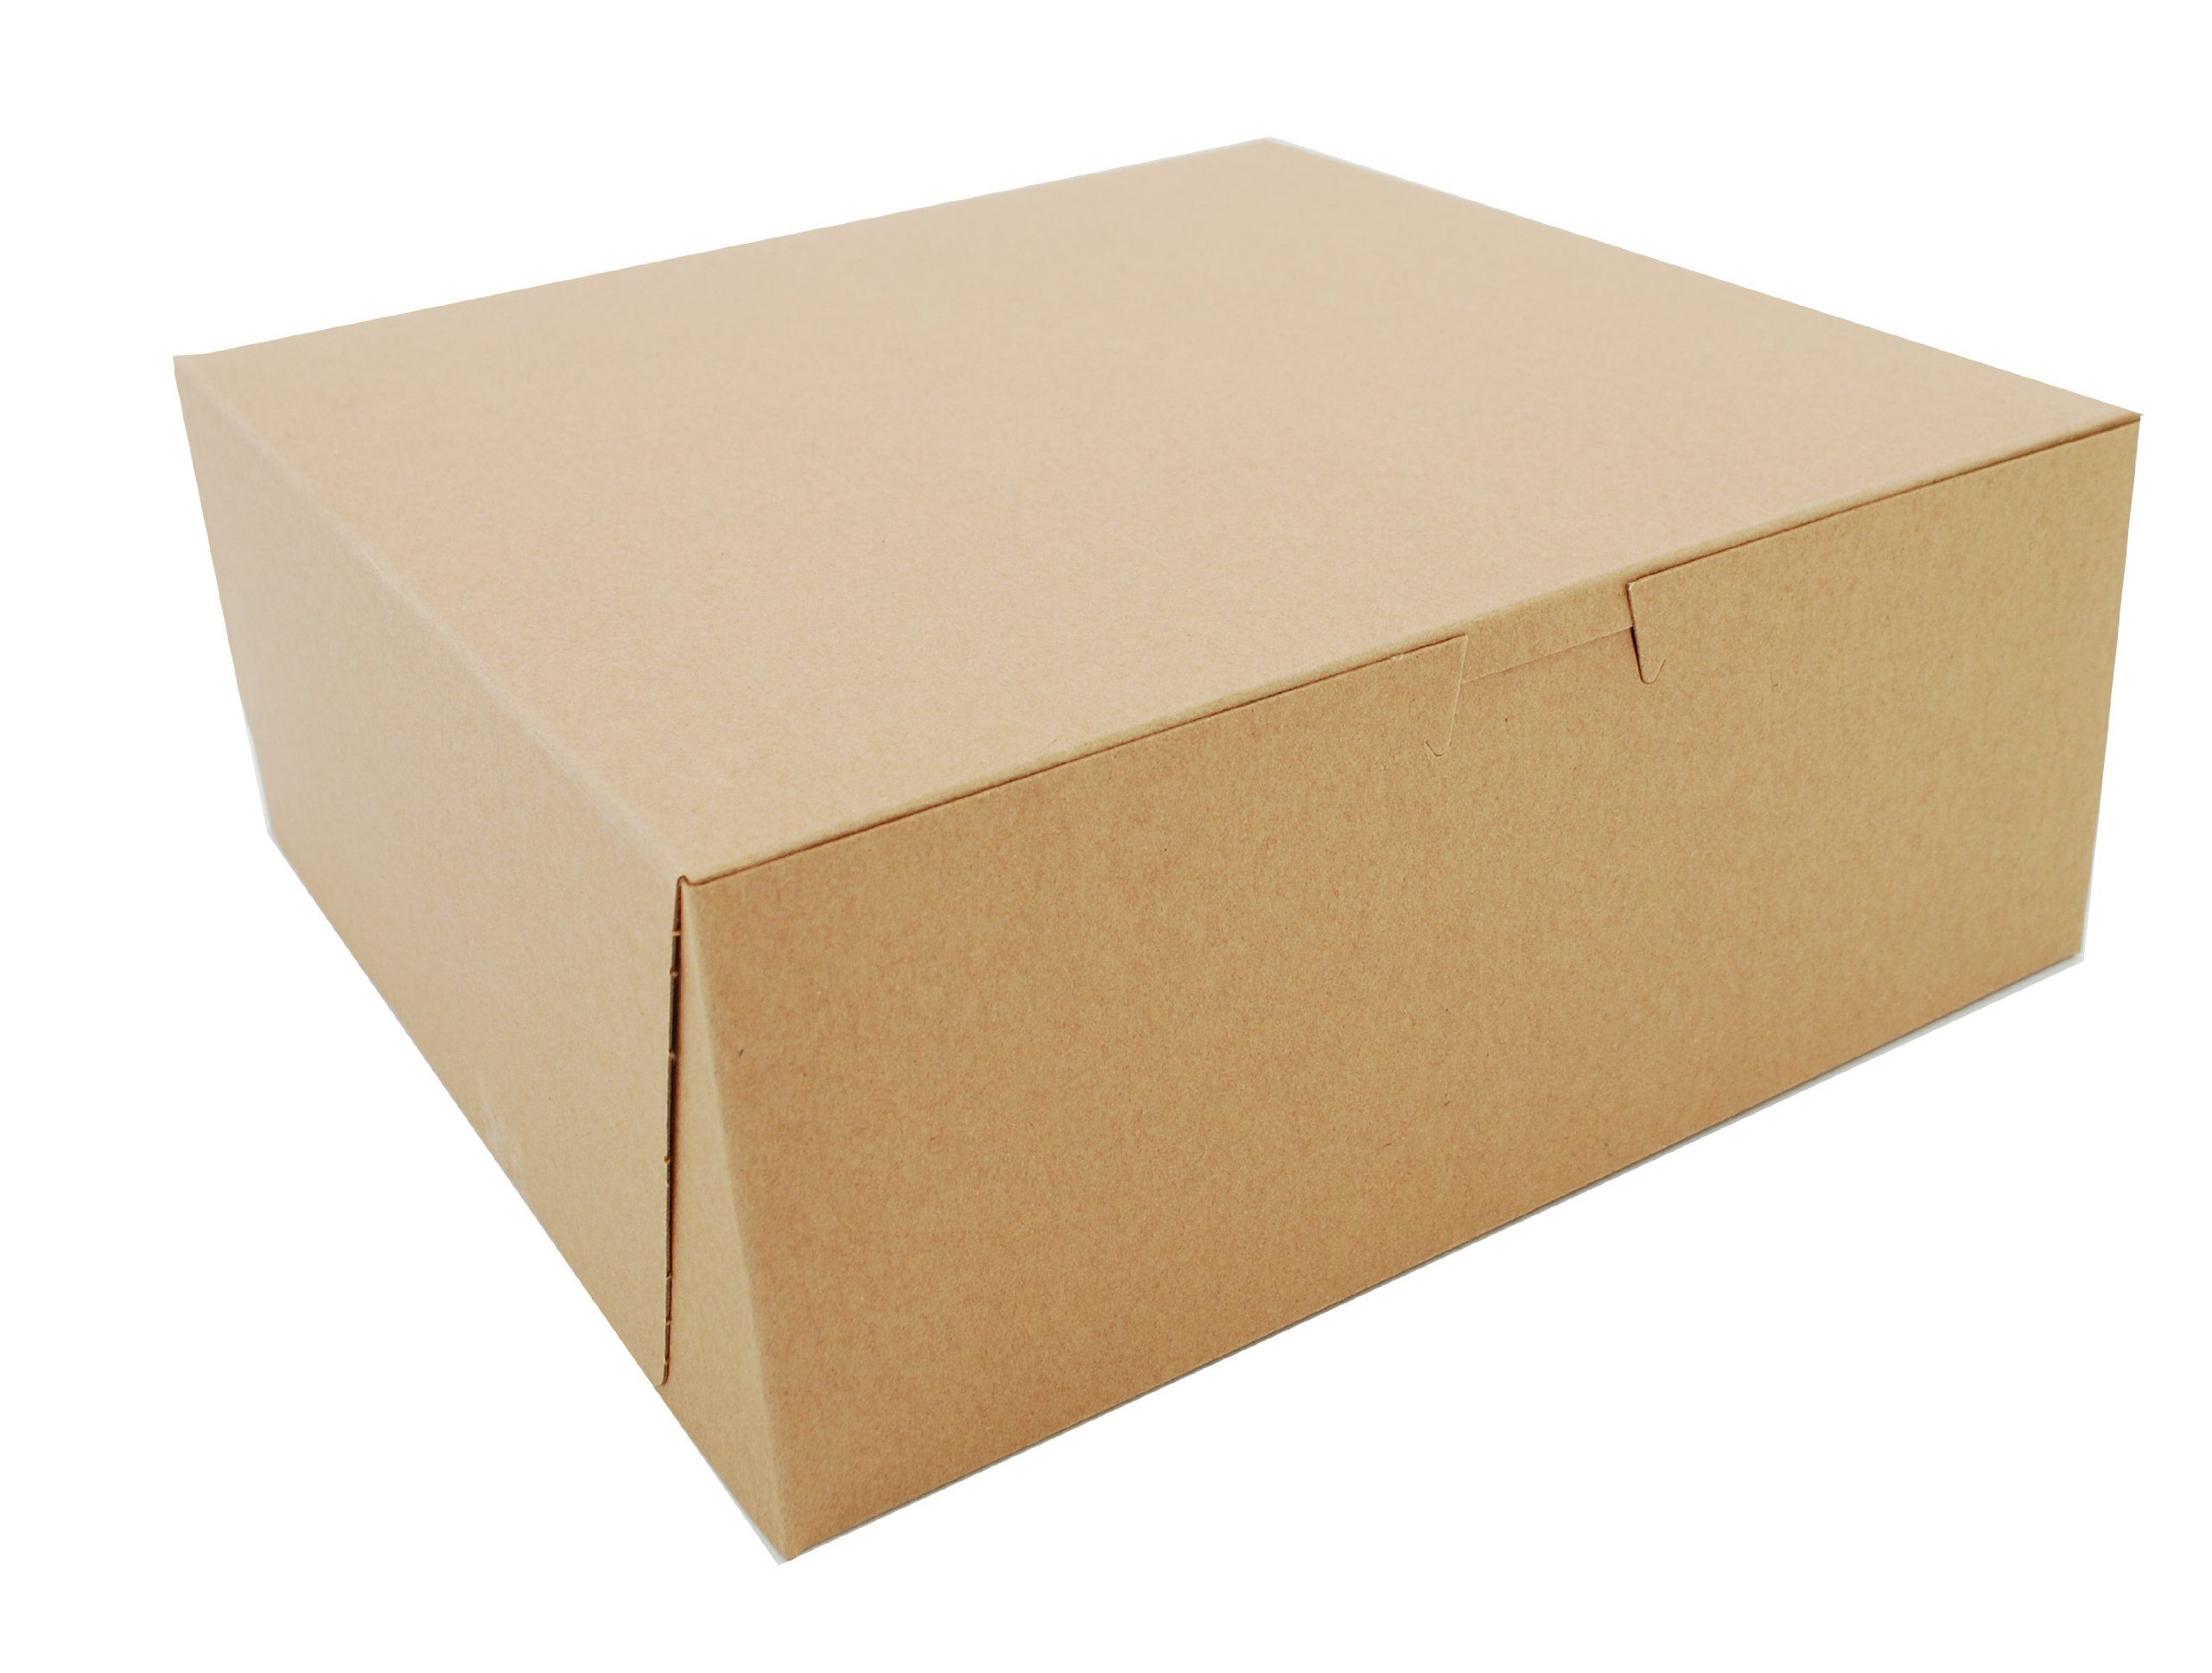 Amazon Com Southern Champion Tray 0973k Kraft Paperboard Non Window Lock Corner Bakery Box 10 Length X 10 Width X 4 Corner Bakery Bakery Box Window Locks